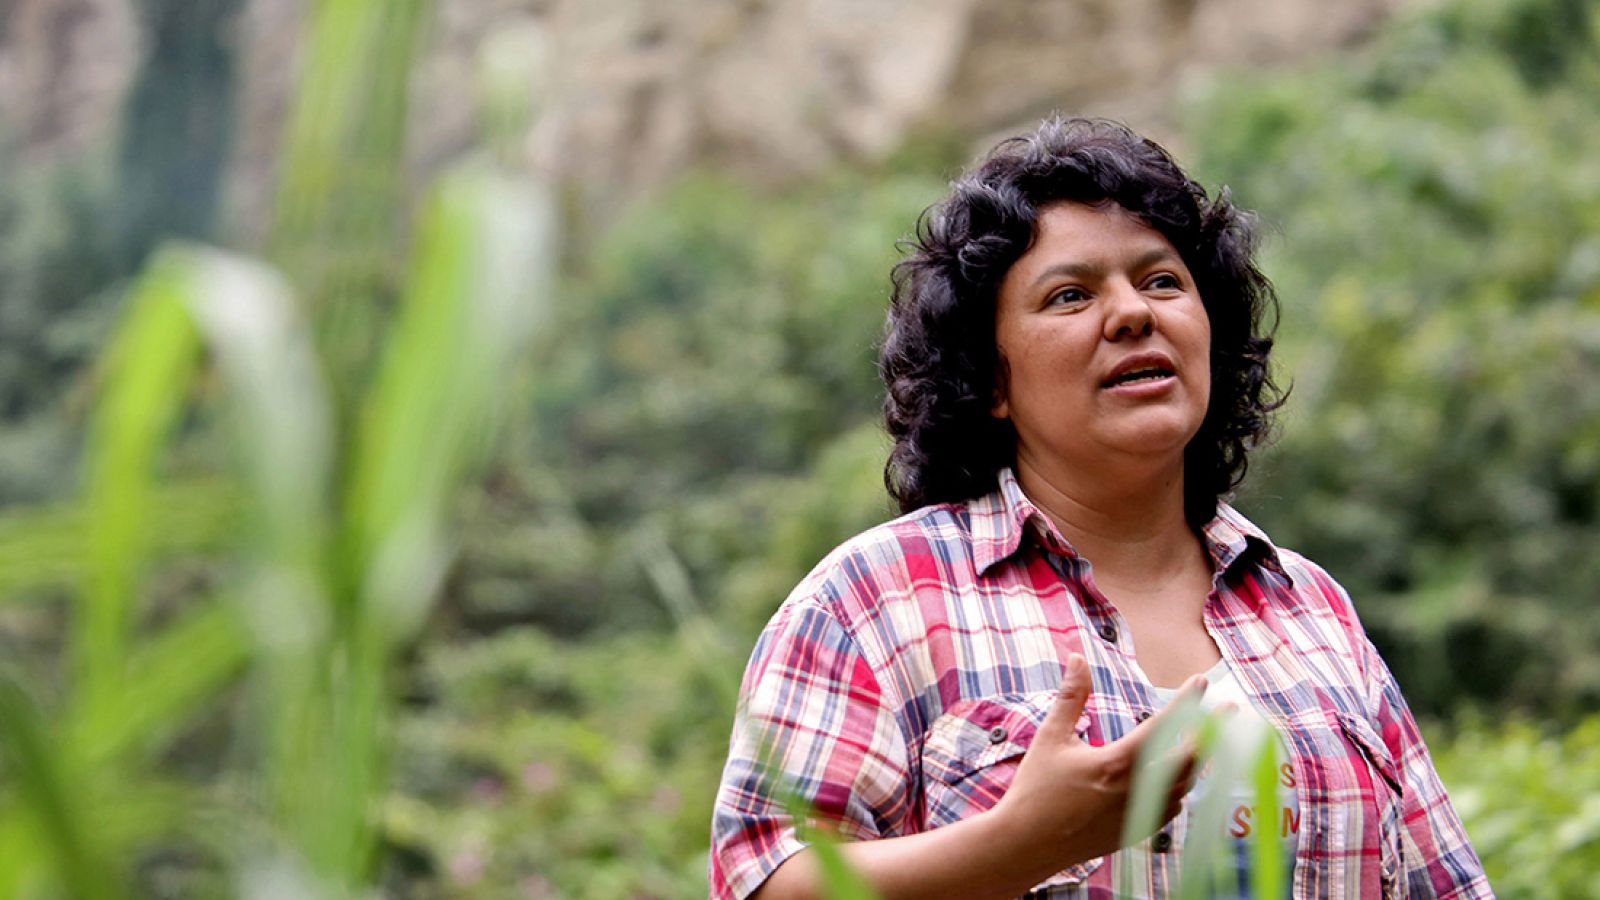 Caceres, a Lenca indigenous activist who won the 2015 Goldman Environmental Prize for her role in fighting a dam project, had previously complained of receiving death threats from police, soldiers and local landowners because of her work.